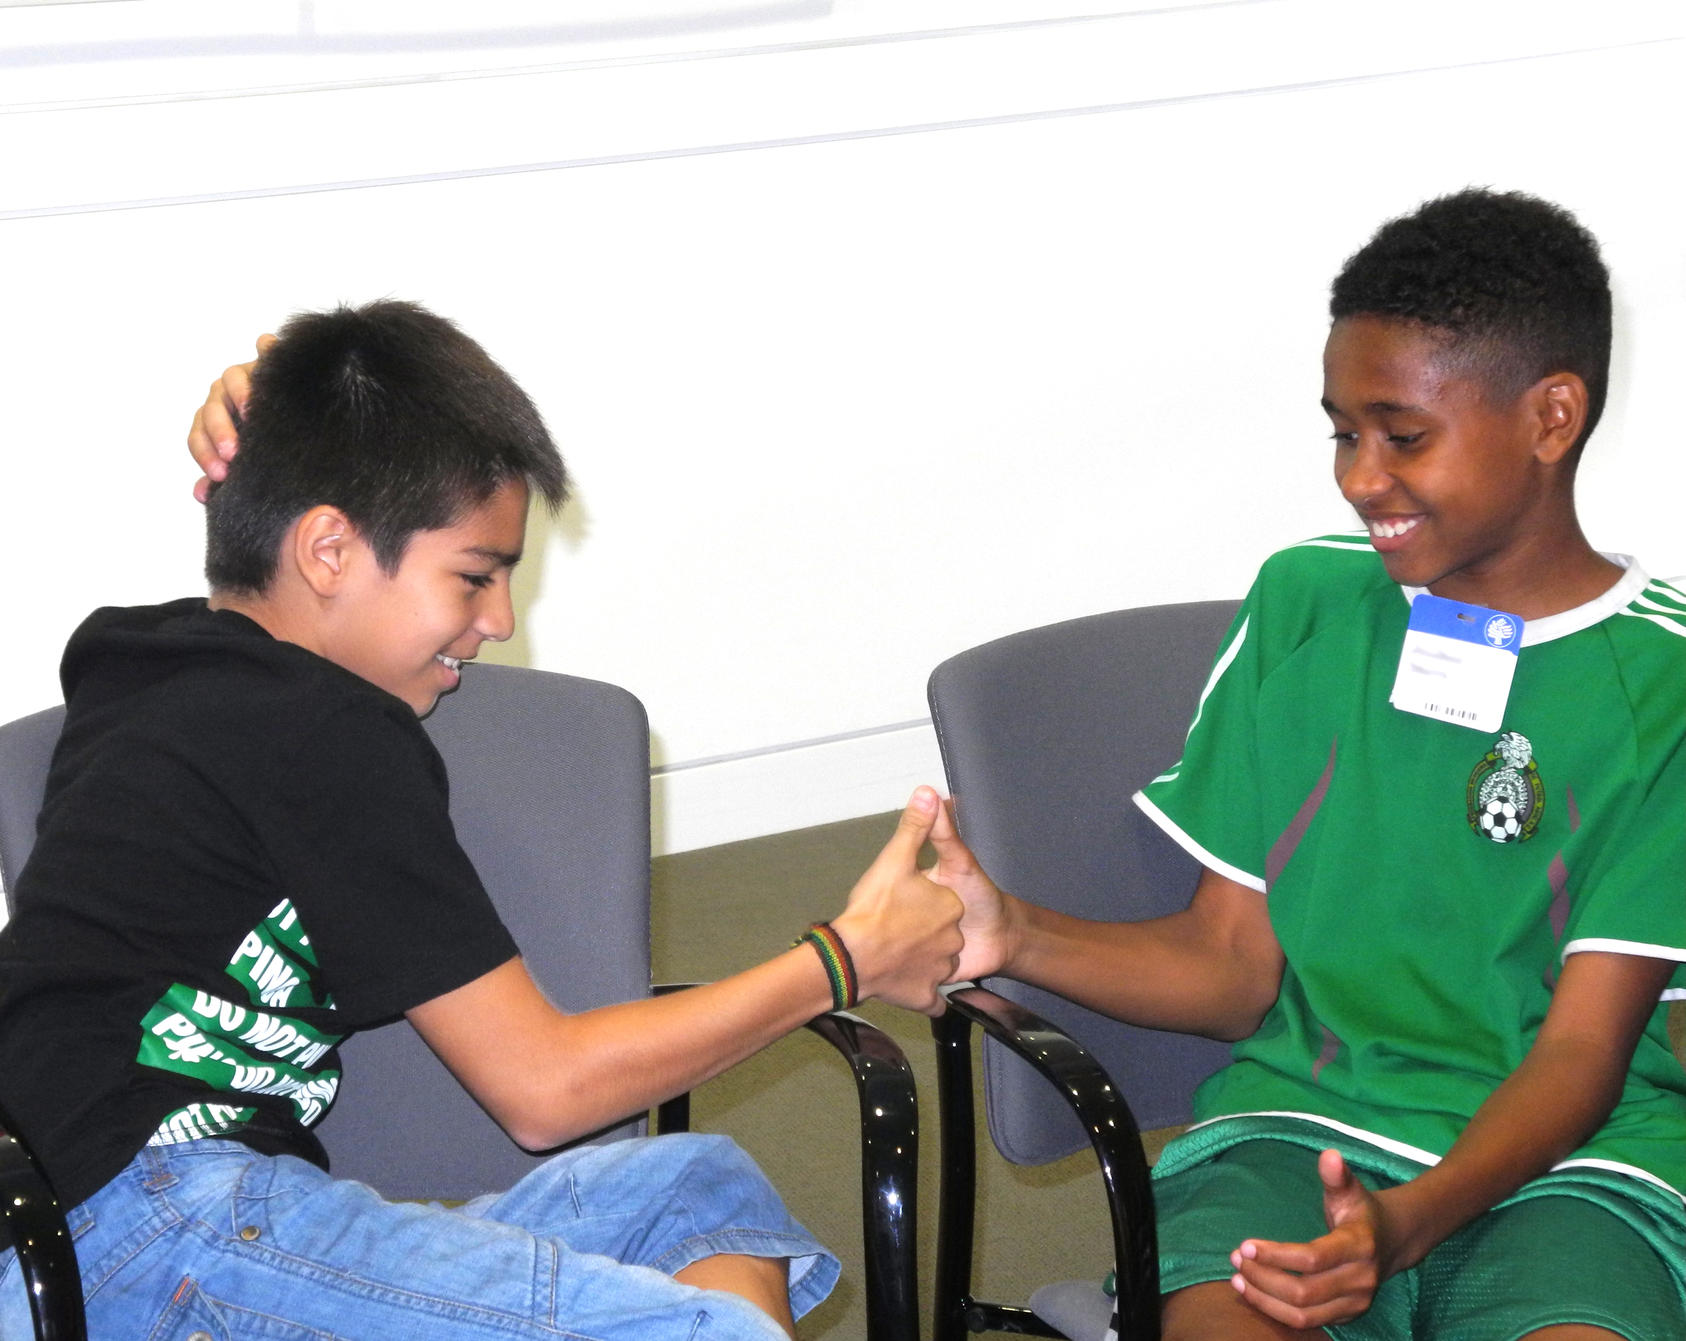 Students participating in the Thumb Wrestling: Competition Versus Cooperation activity at USIP.